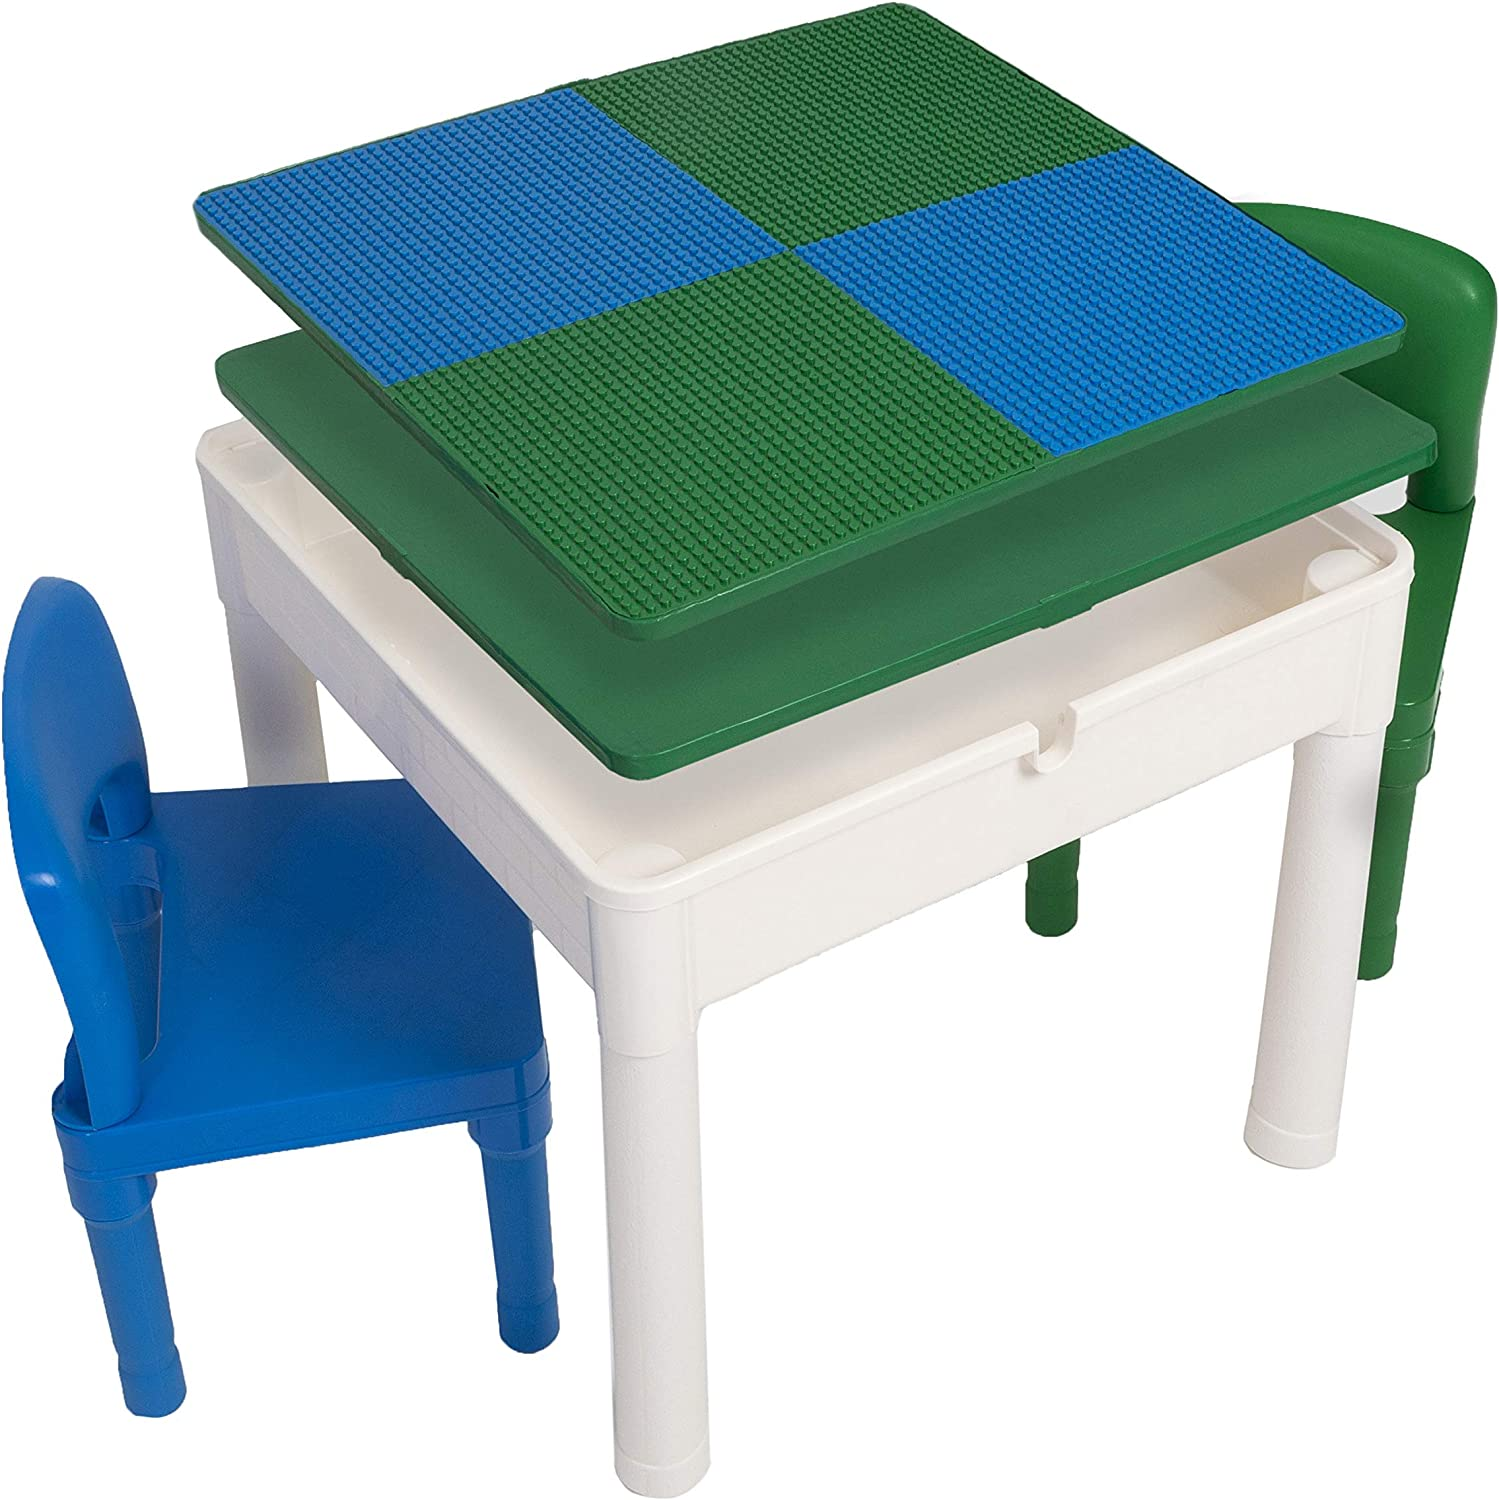 3 in 1 Water Table Blue and Green Play Platoon Kids Activity Table Set Includes 2 Chairs and 25 Jumbo Bricks Craft Table and Building Brick Table with Storage